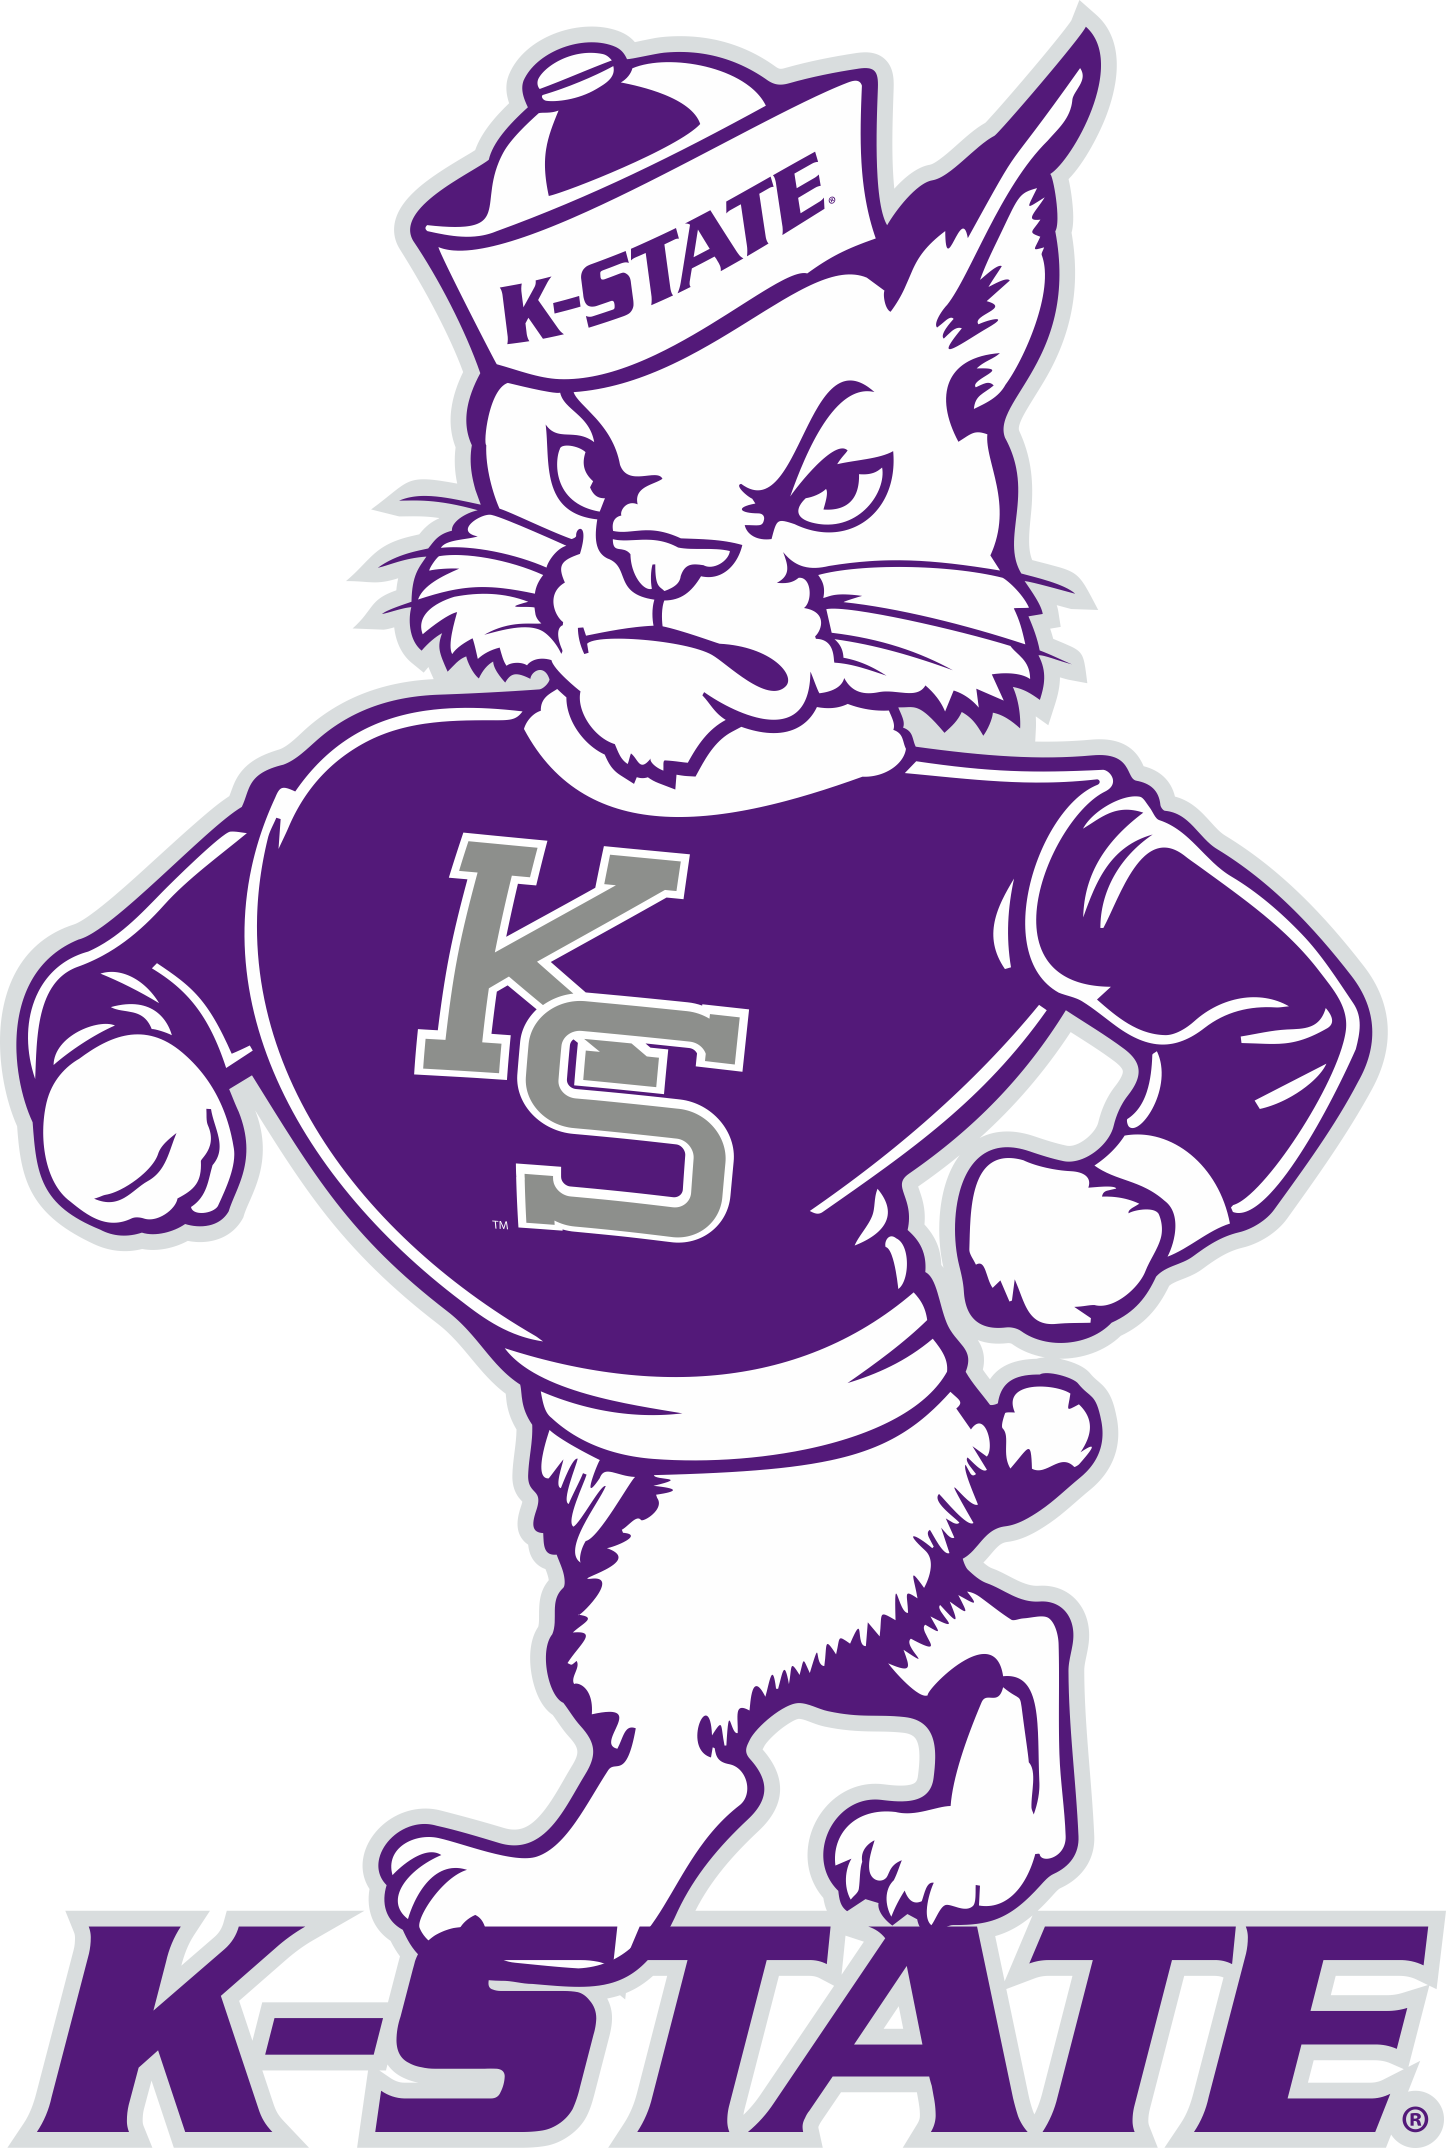 Kansas state logo clipart png svg royalty free stock 1000+ images about Victors on Pinterest | Logos, Career and EA svg royalty free stock